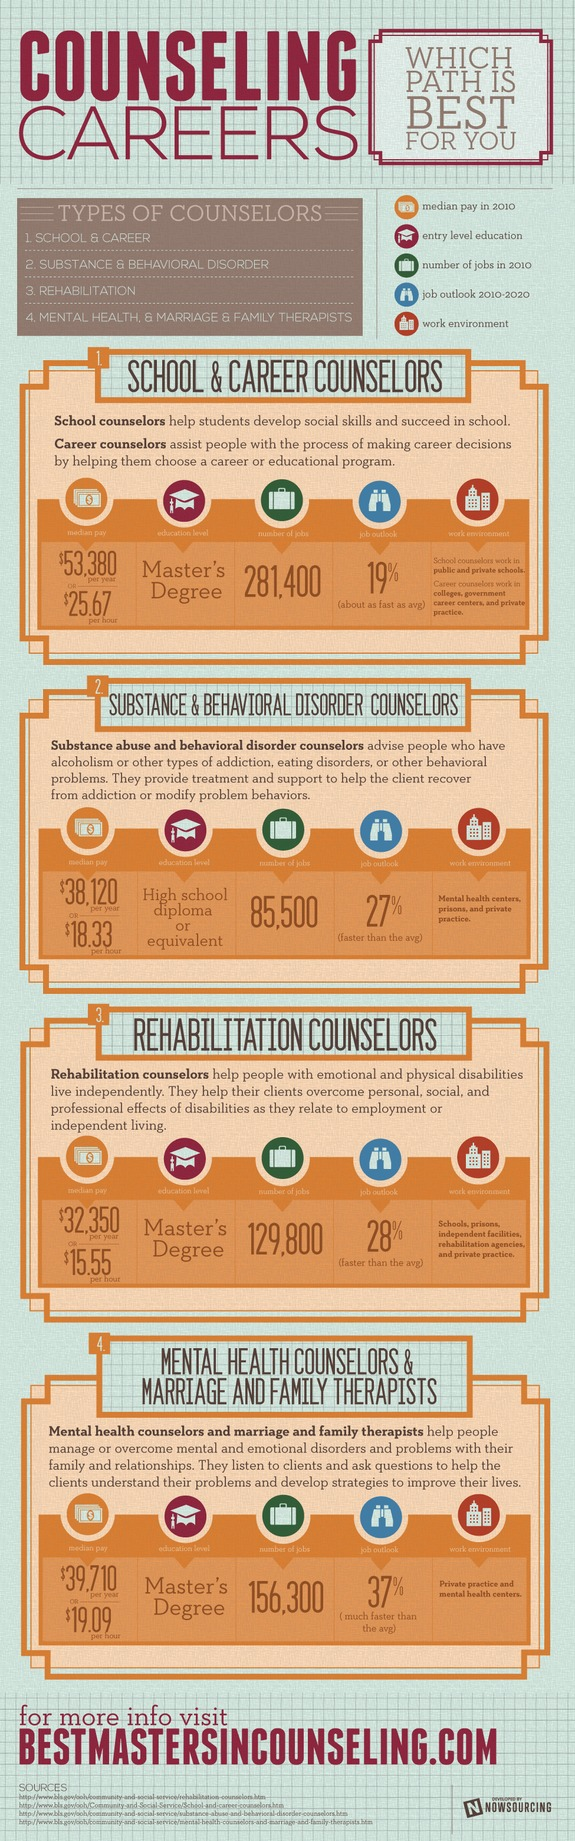 Counselling Careers Infographic